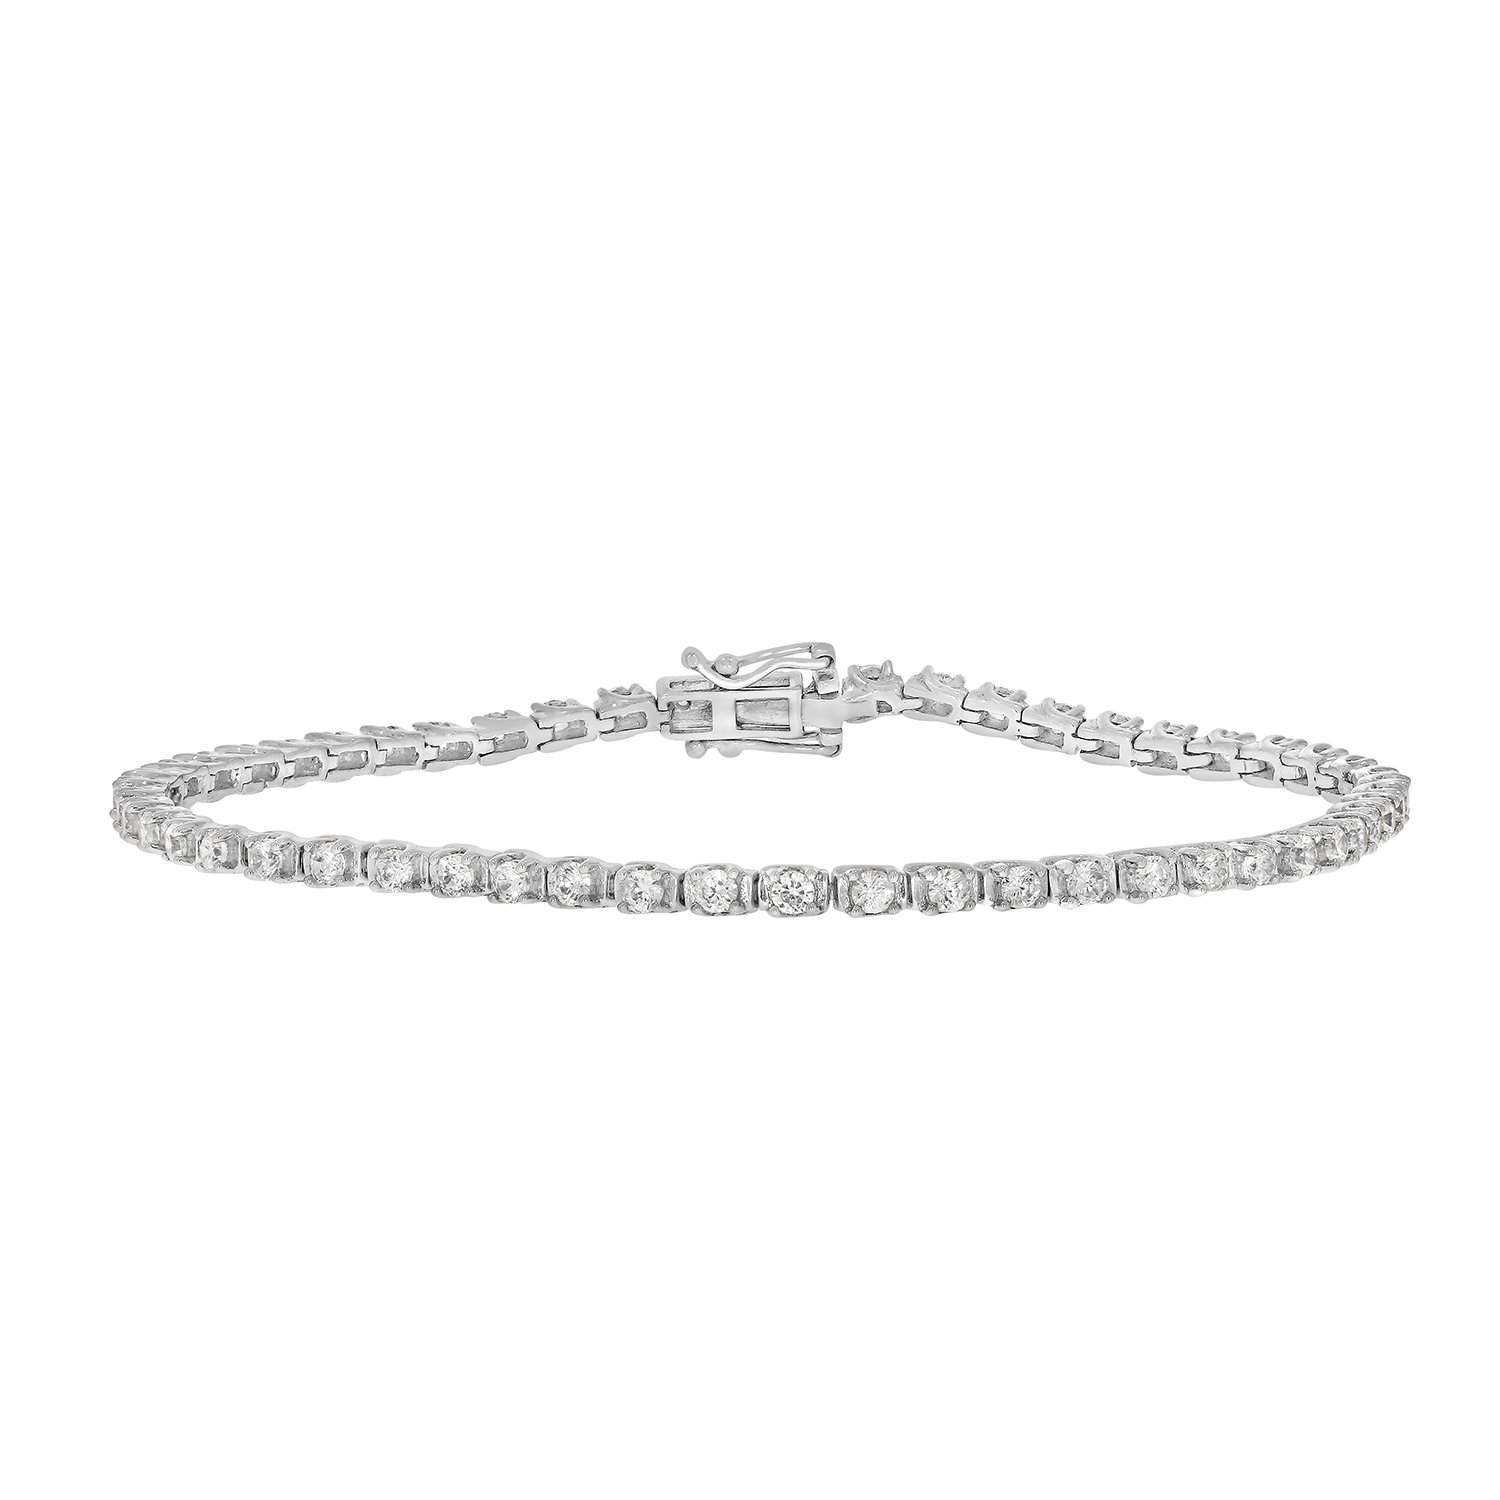 2 cttw Round Cut White Diamond 4 Prong Ladies Tennis Bracelet Crafted in 10k White Gold by eSparkle